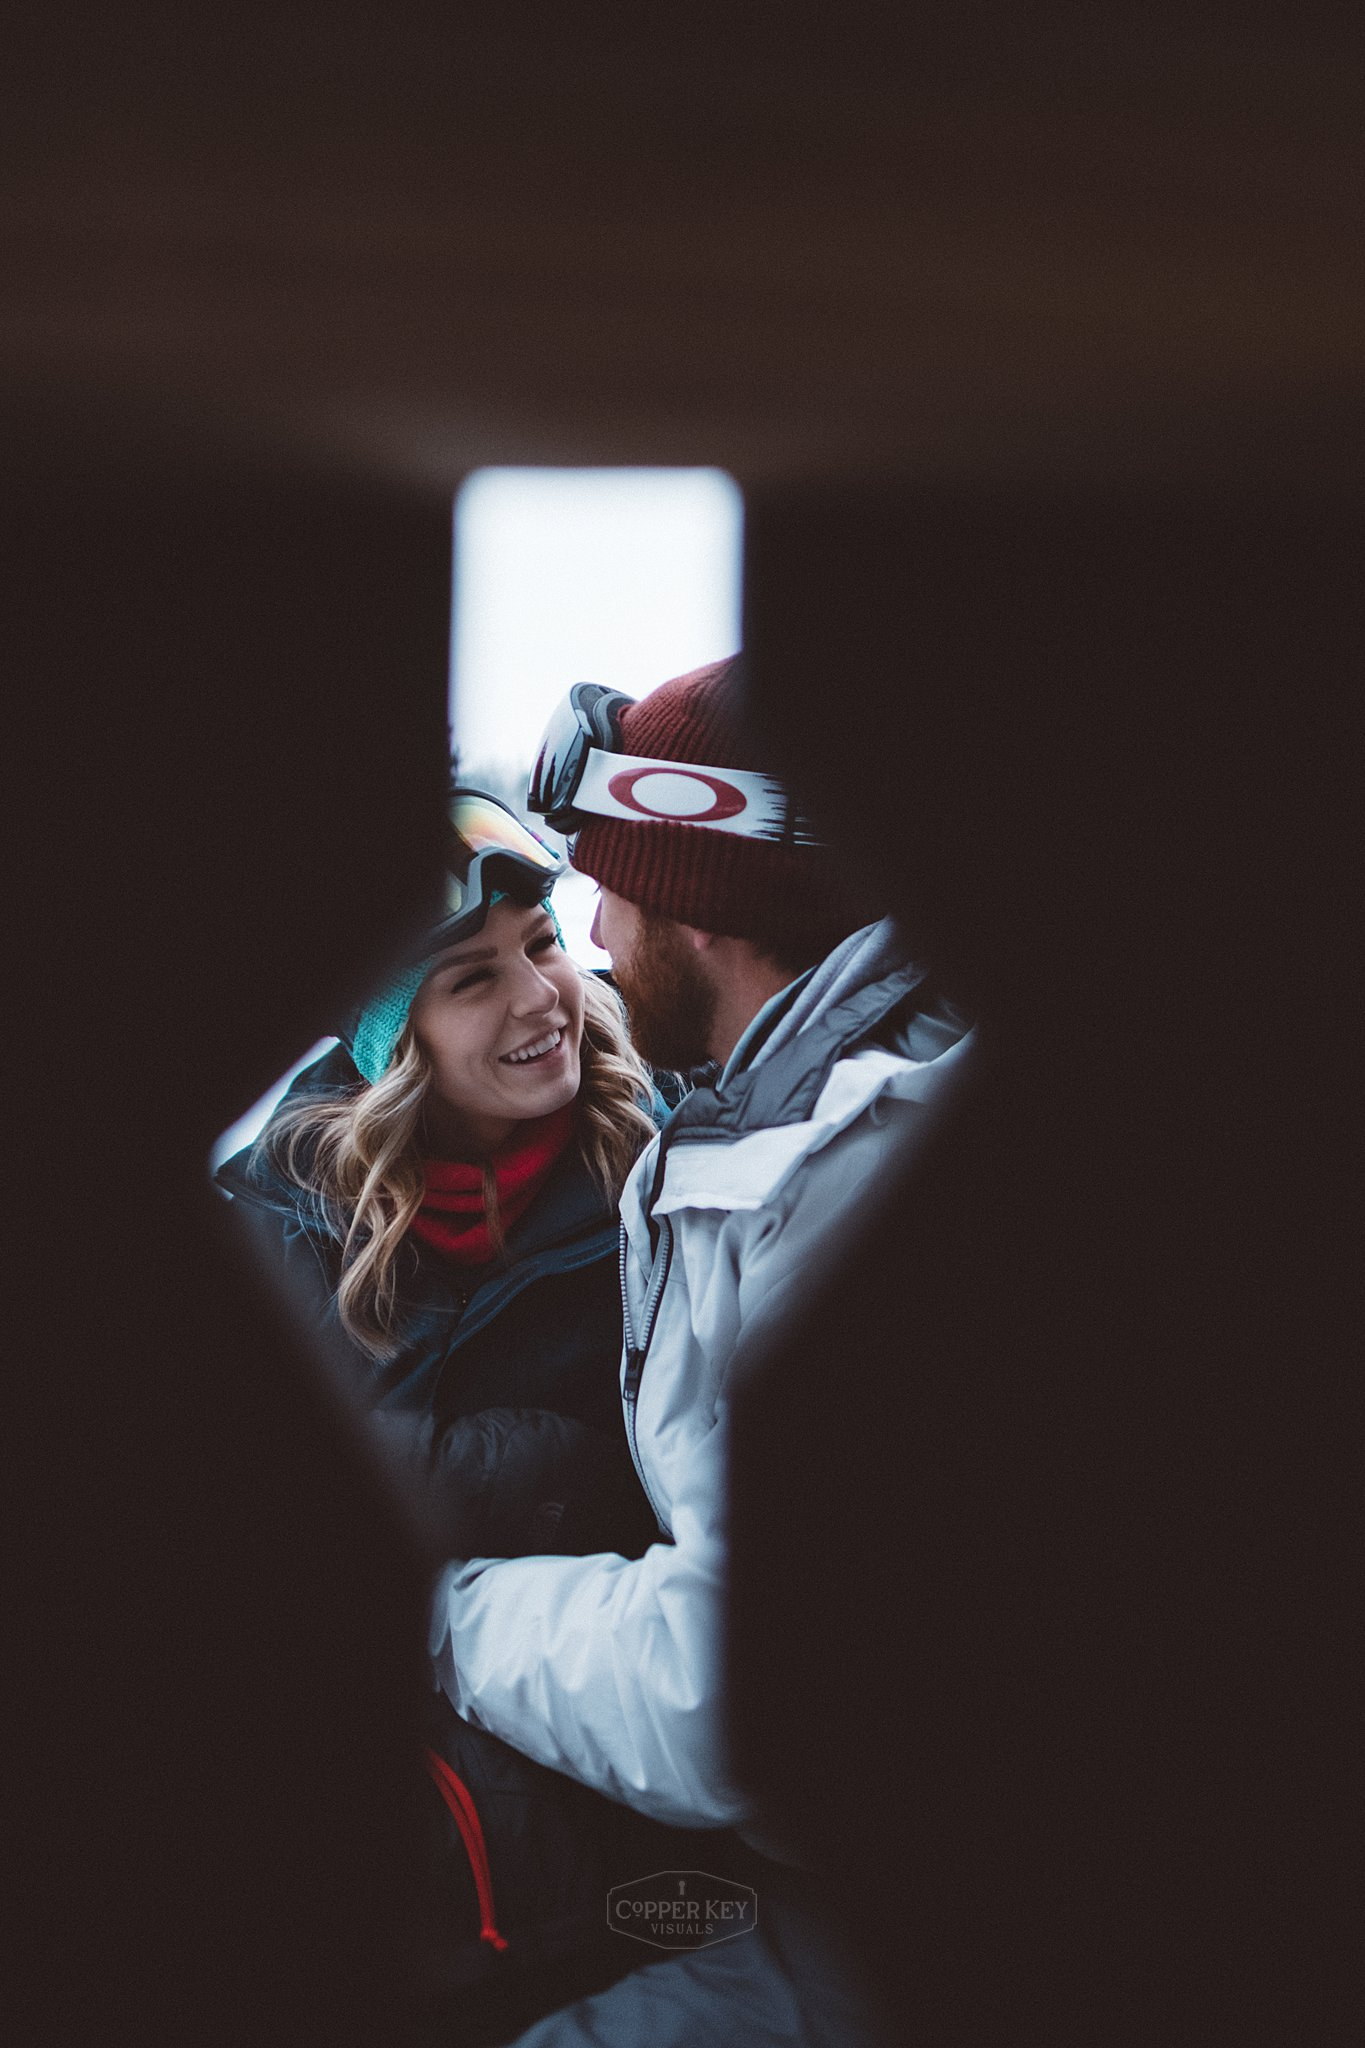 Copper Key Visuals Tyrol Basin Engagement Session-8.jpg